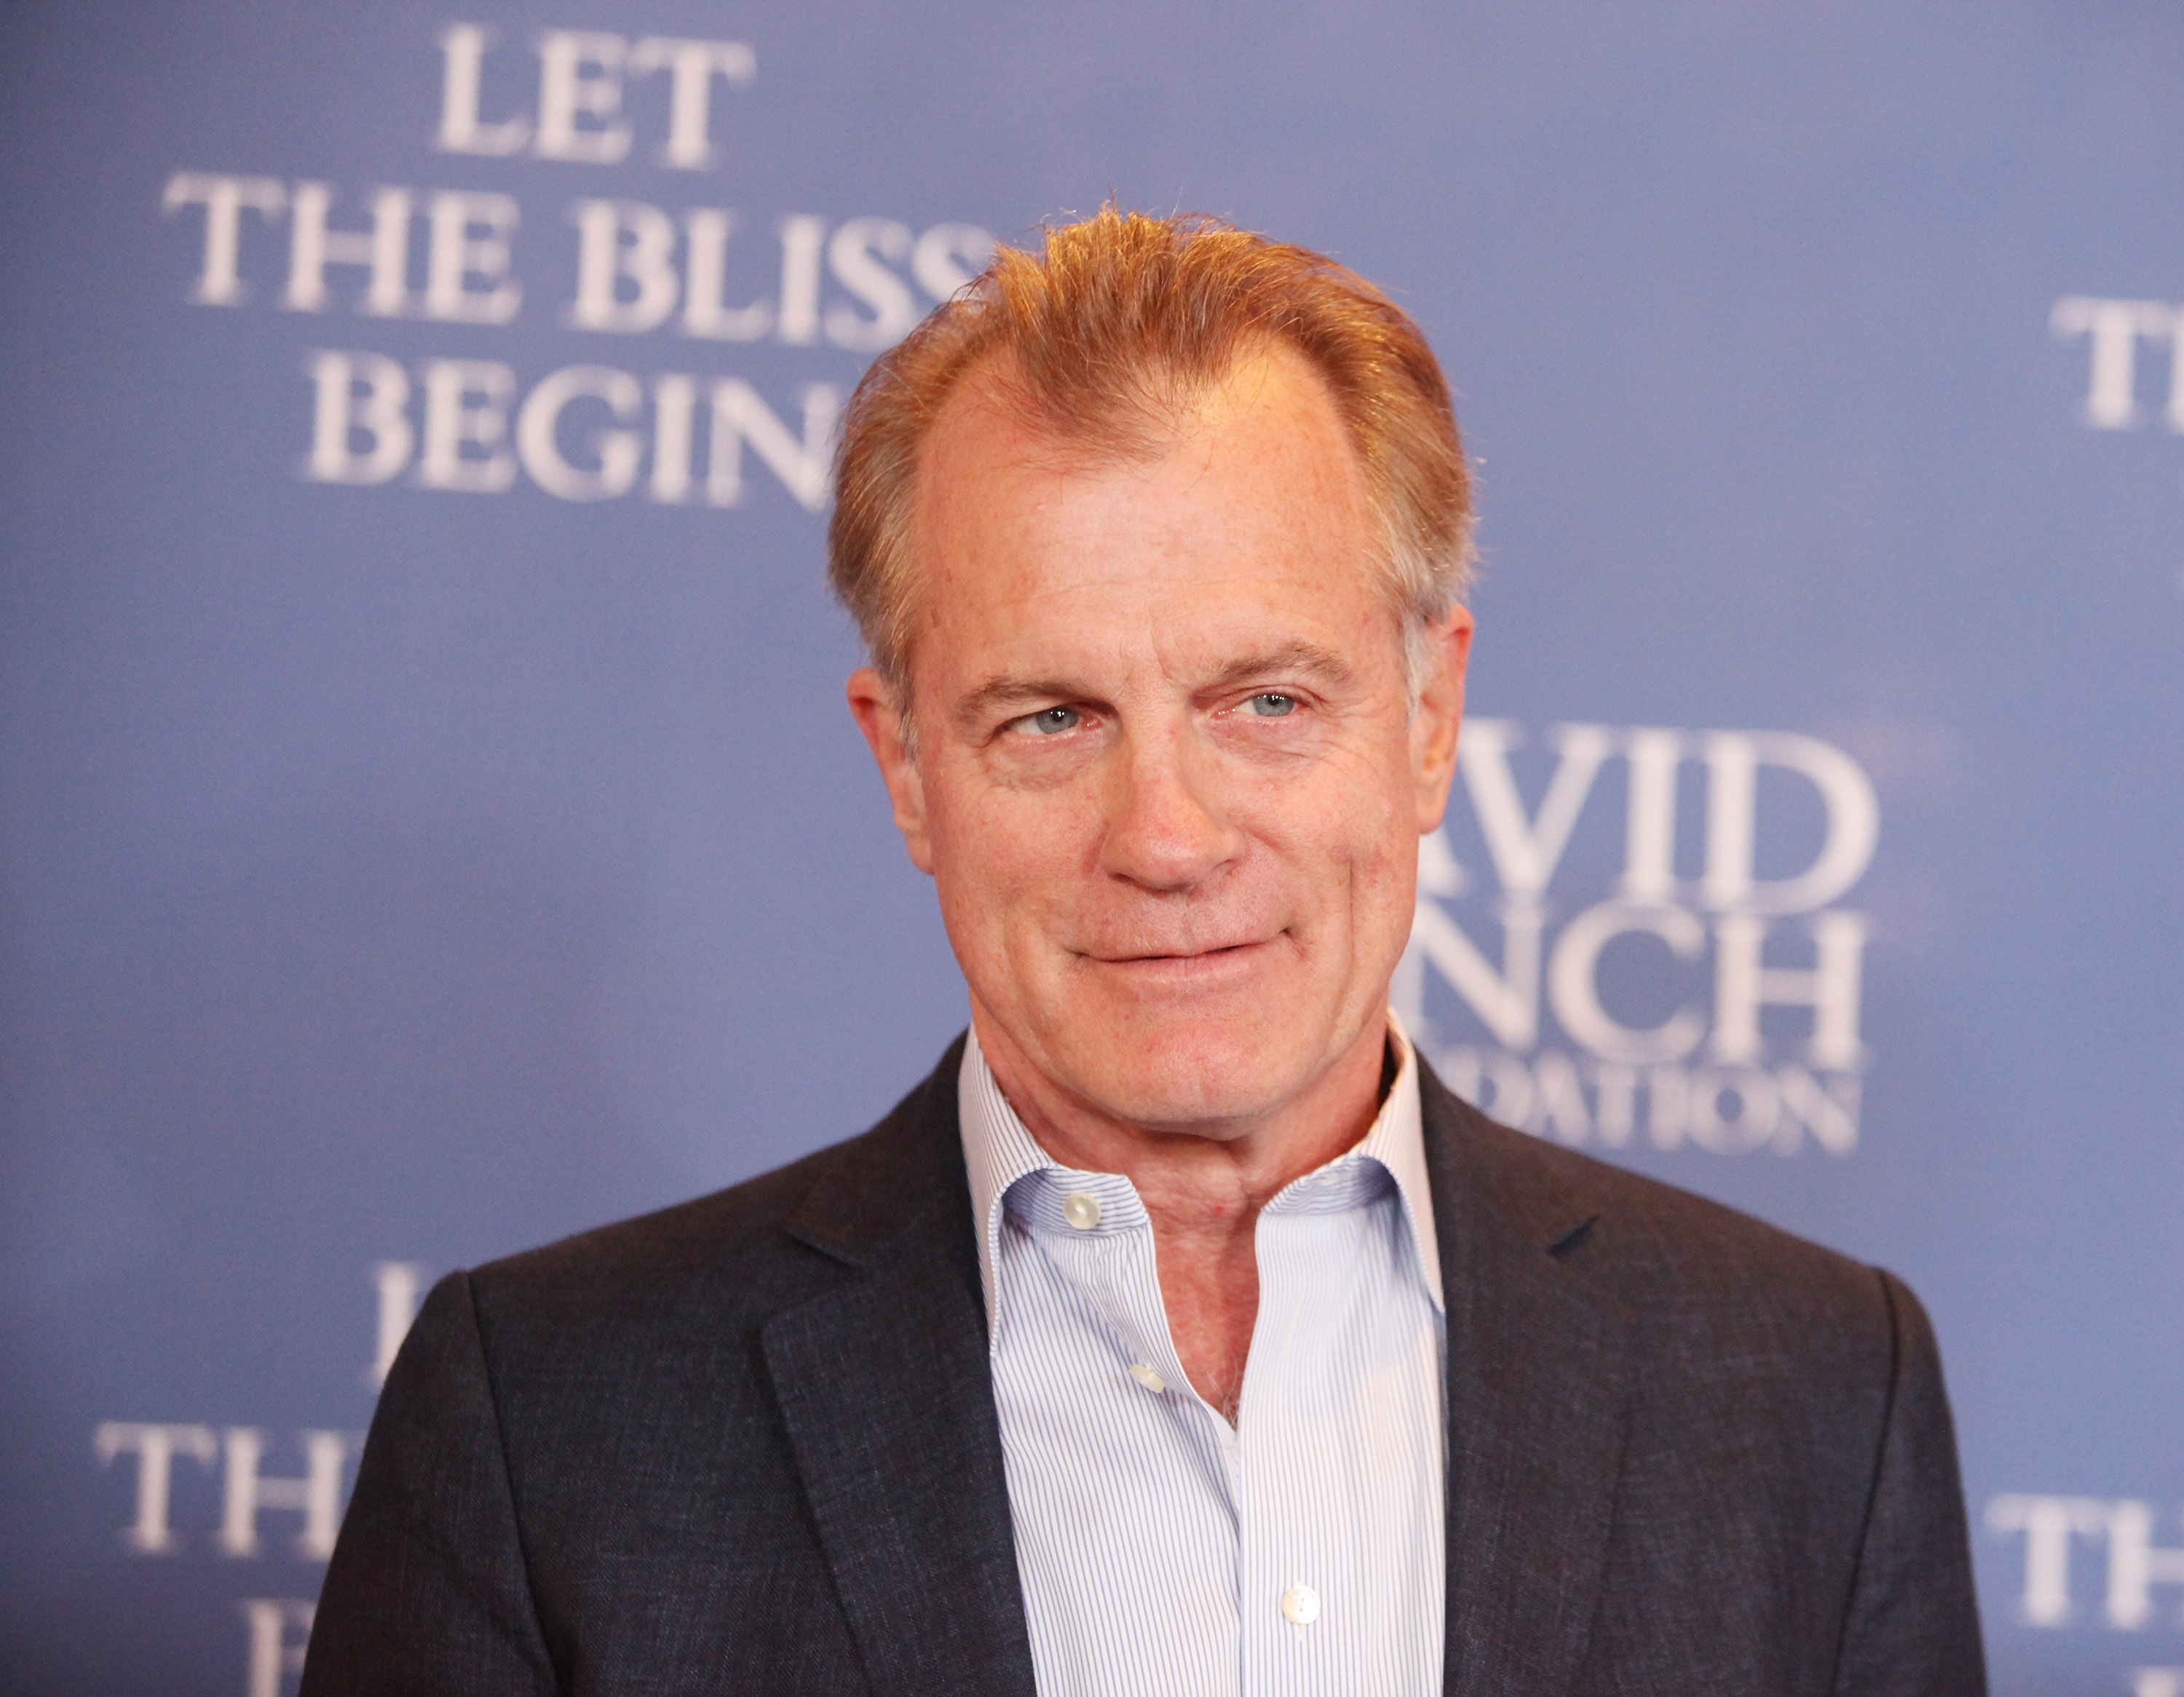 BEVERLY HILLS, CA - JUNE 30:  Stephen Collins arrives at The David Lynch Foundation hosts a 'Night of Comedy' held at the Bev